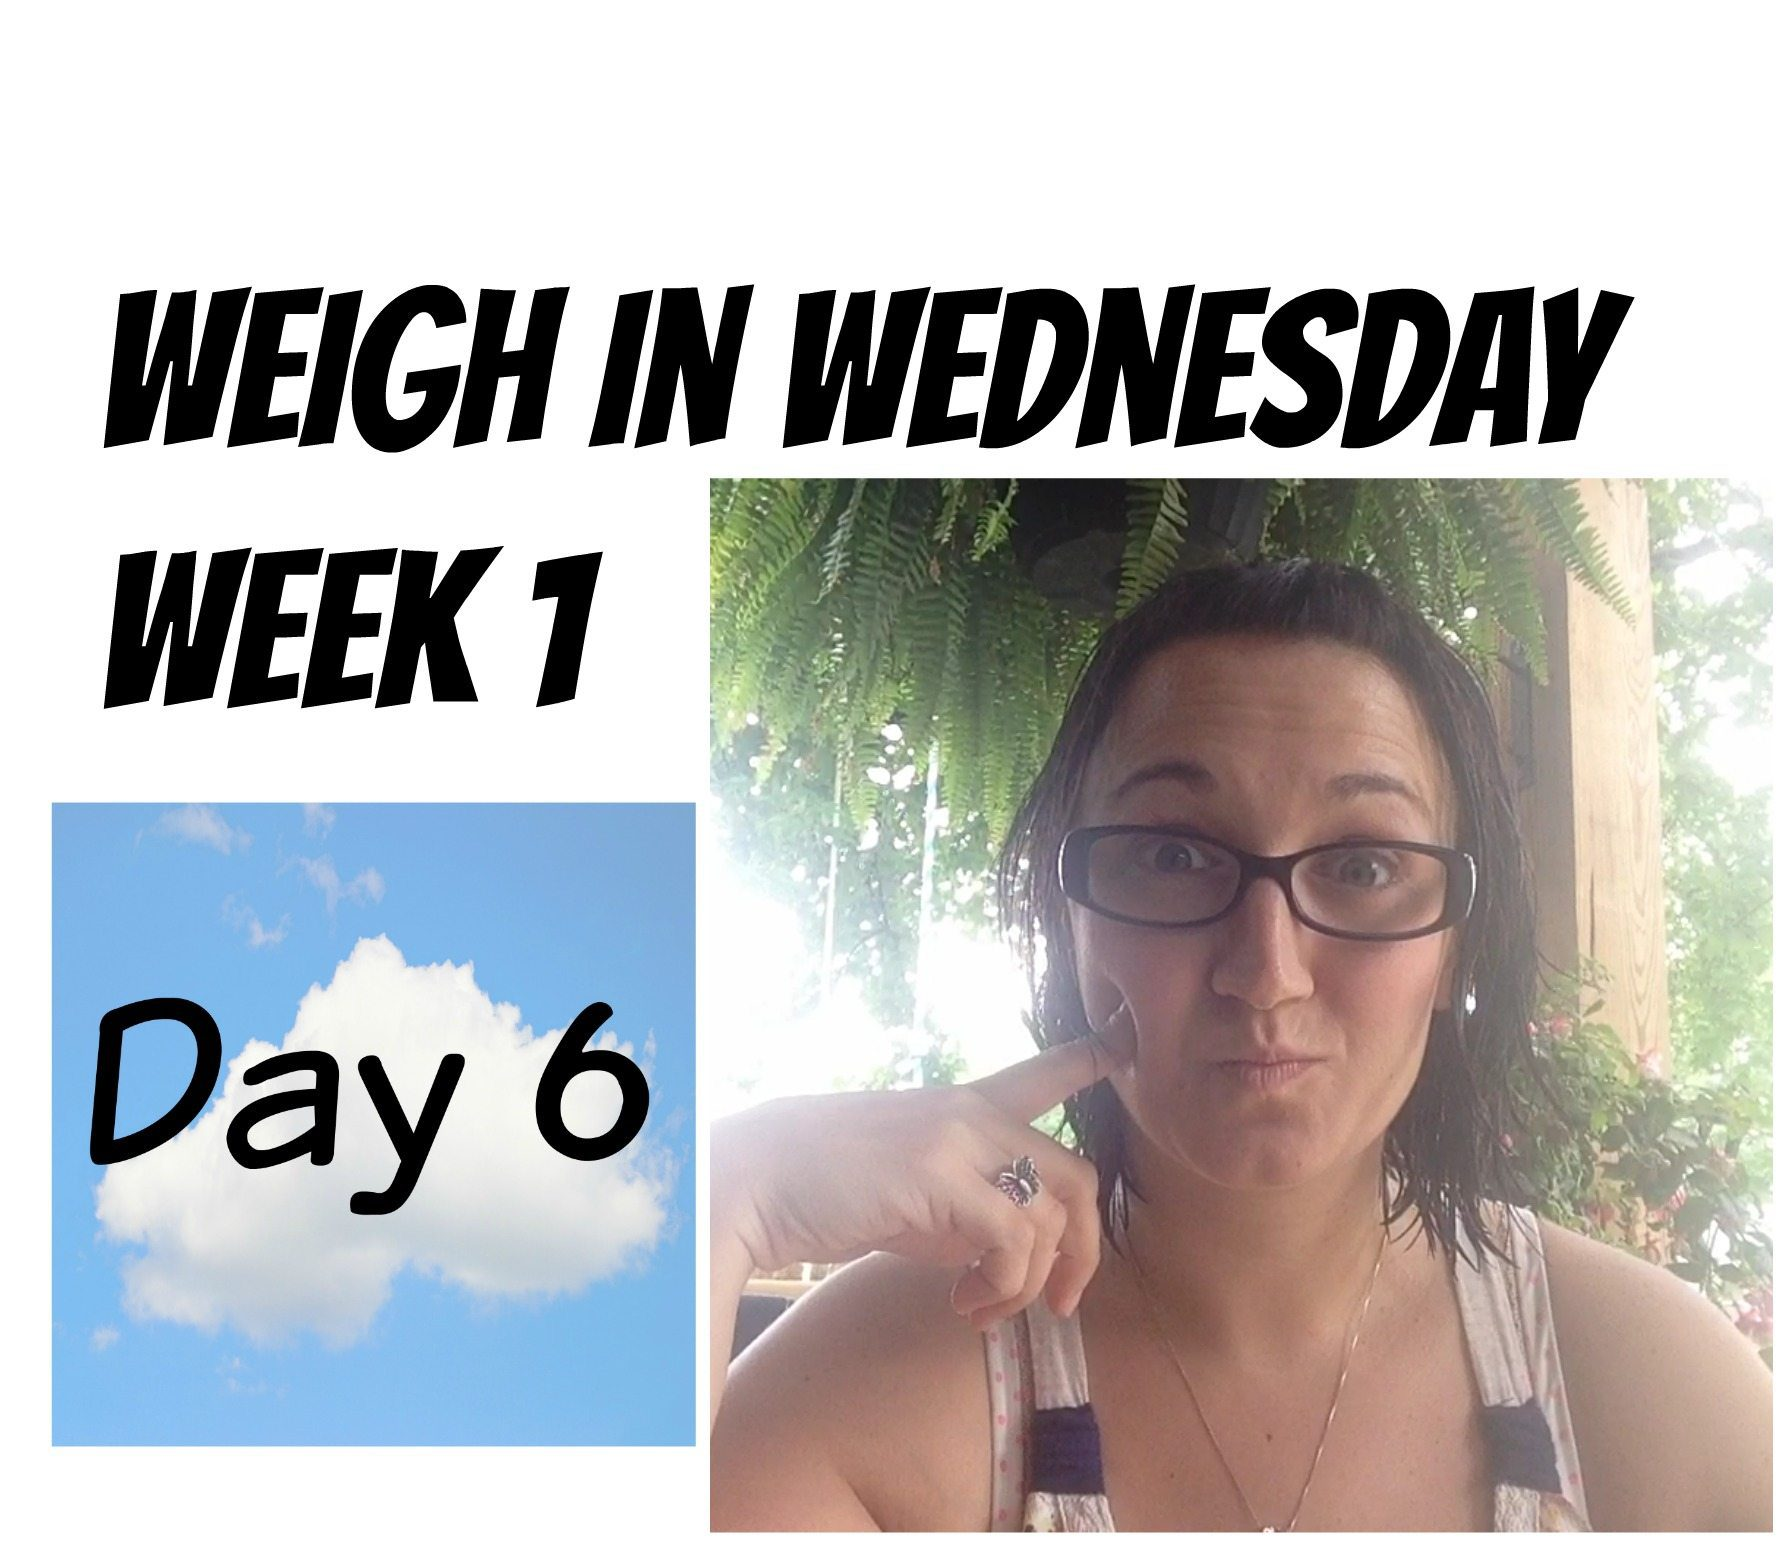 Weigh In Wednesday – Week 1 – Day 6